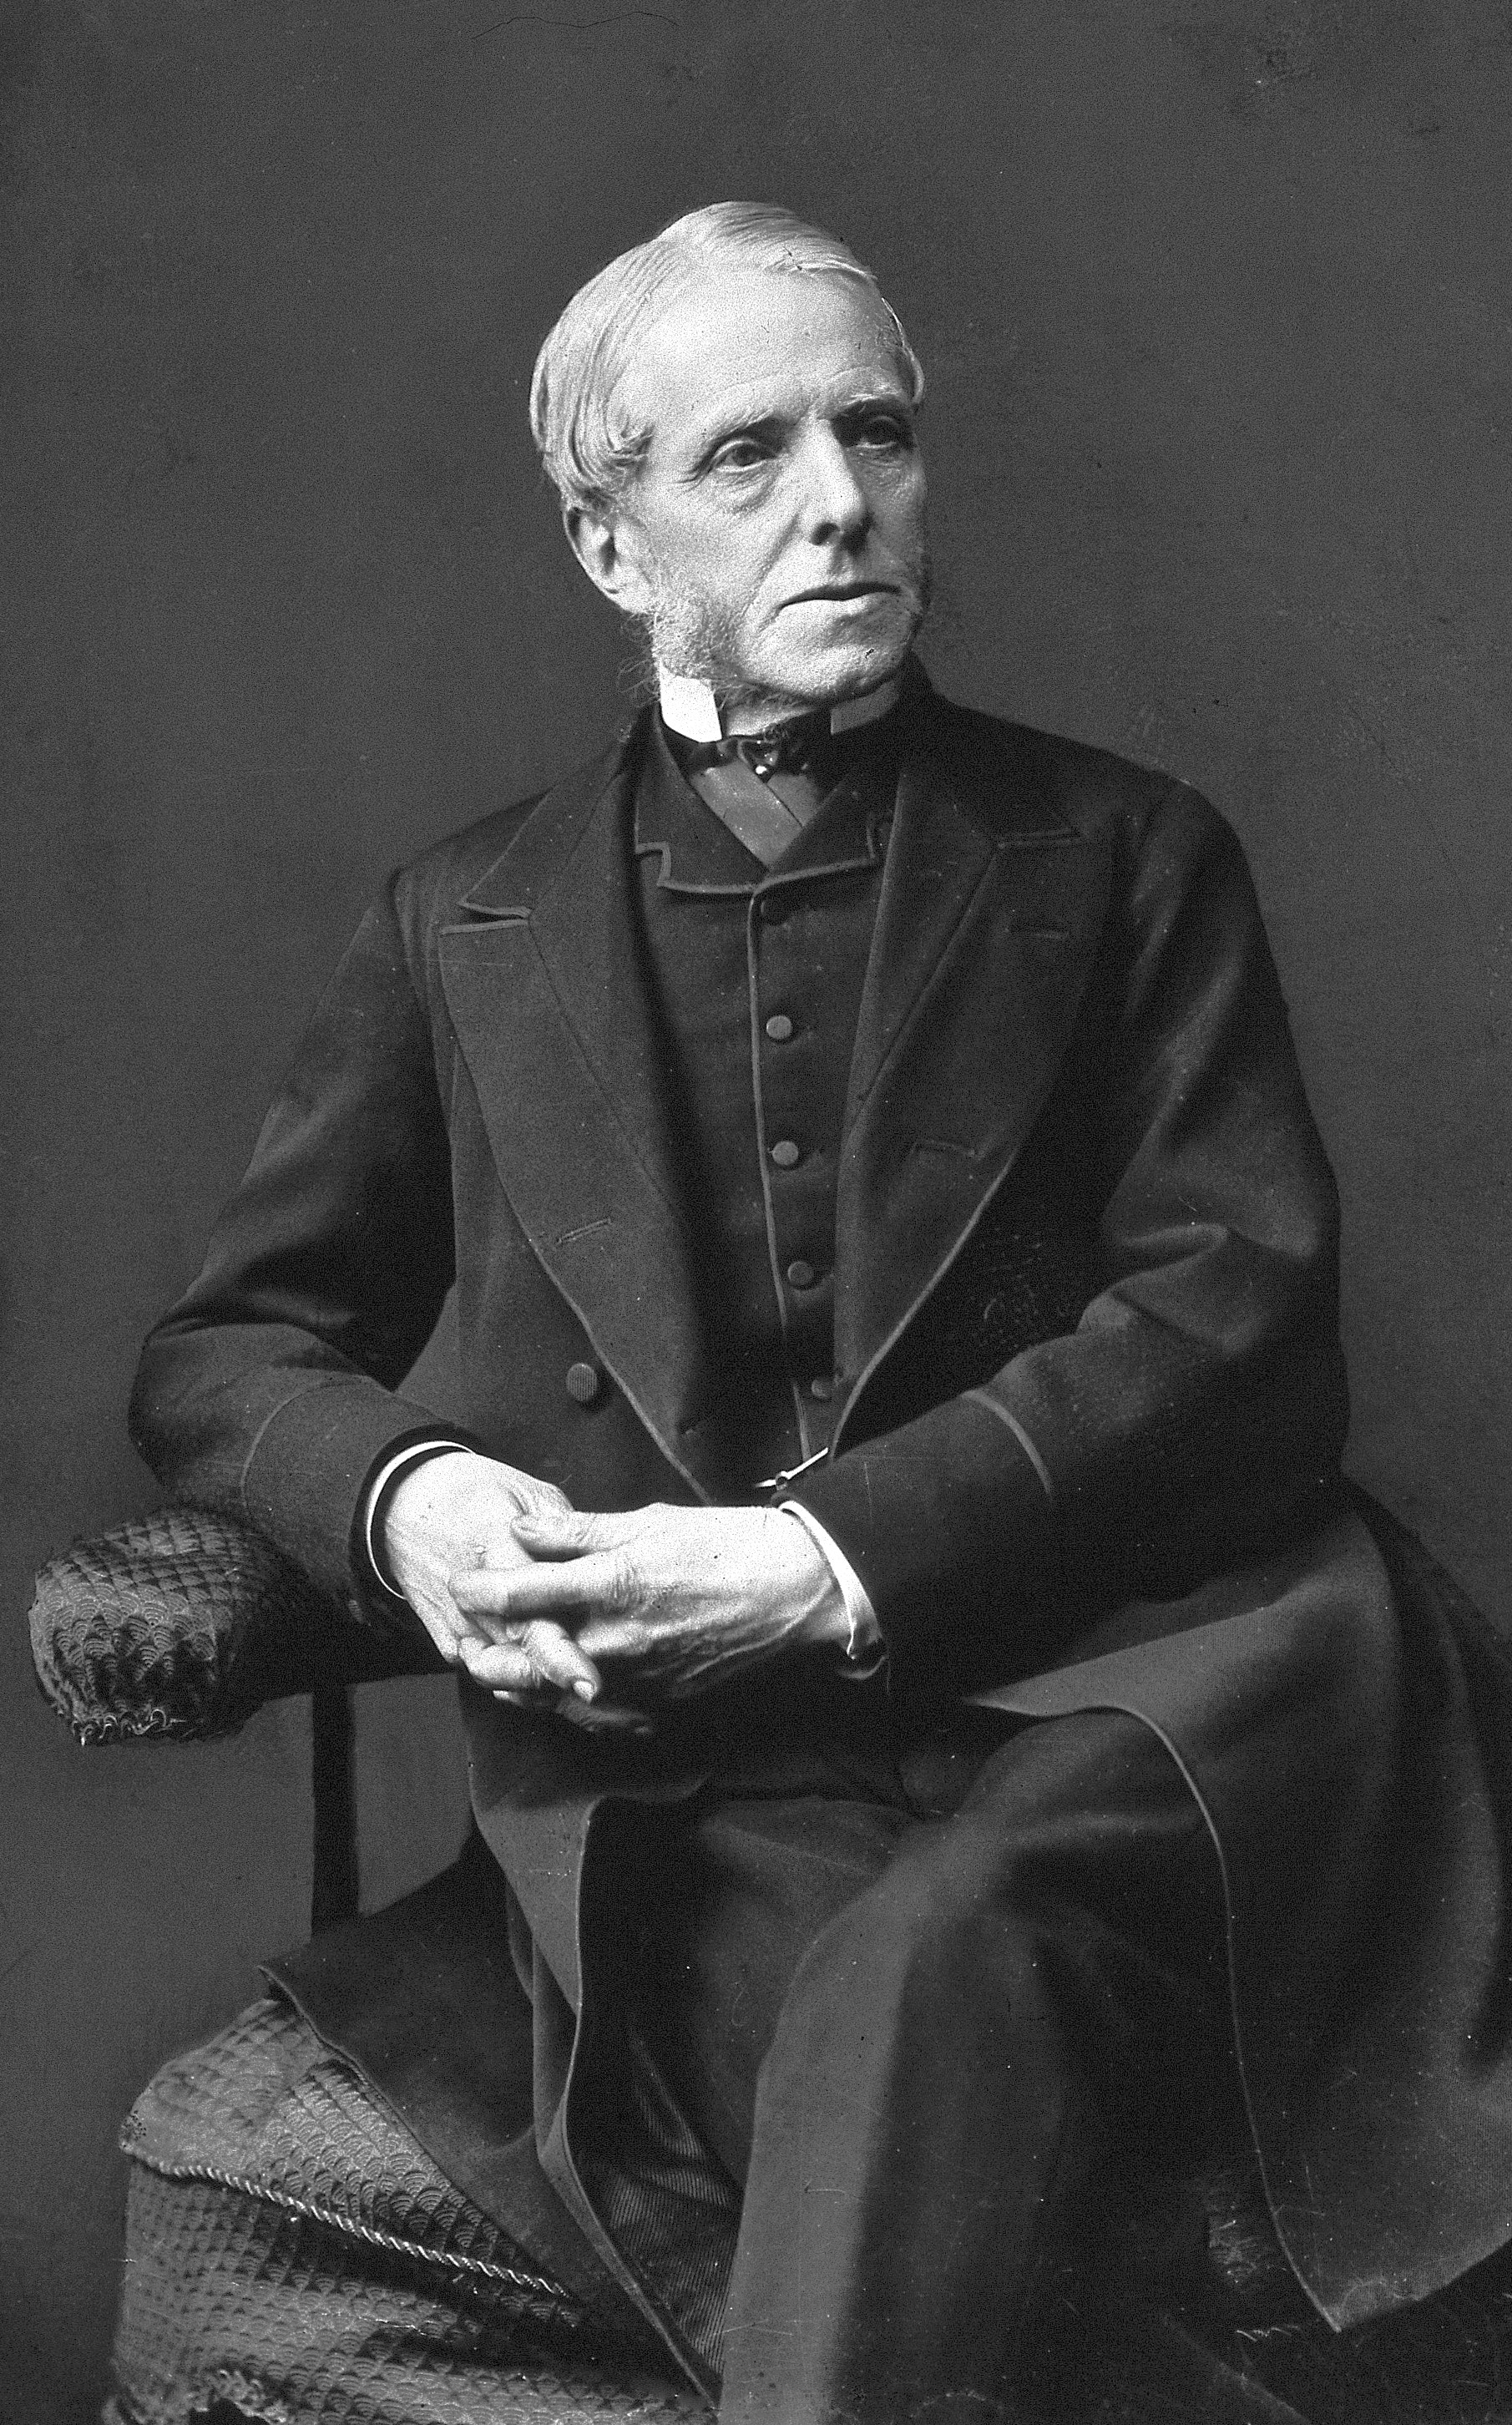 V0028735 Sir Henry Duncan Littlejohn. Photograph.